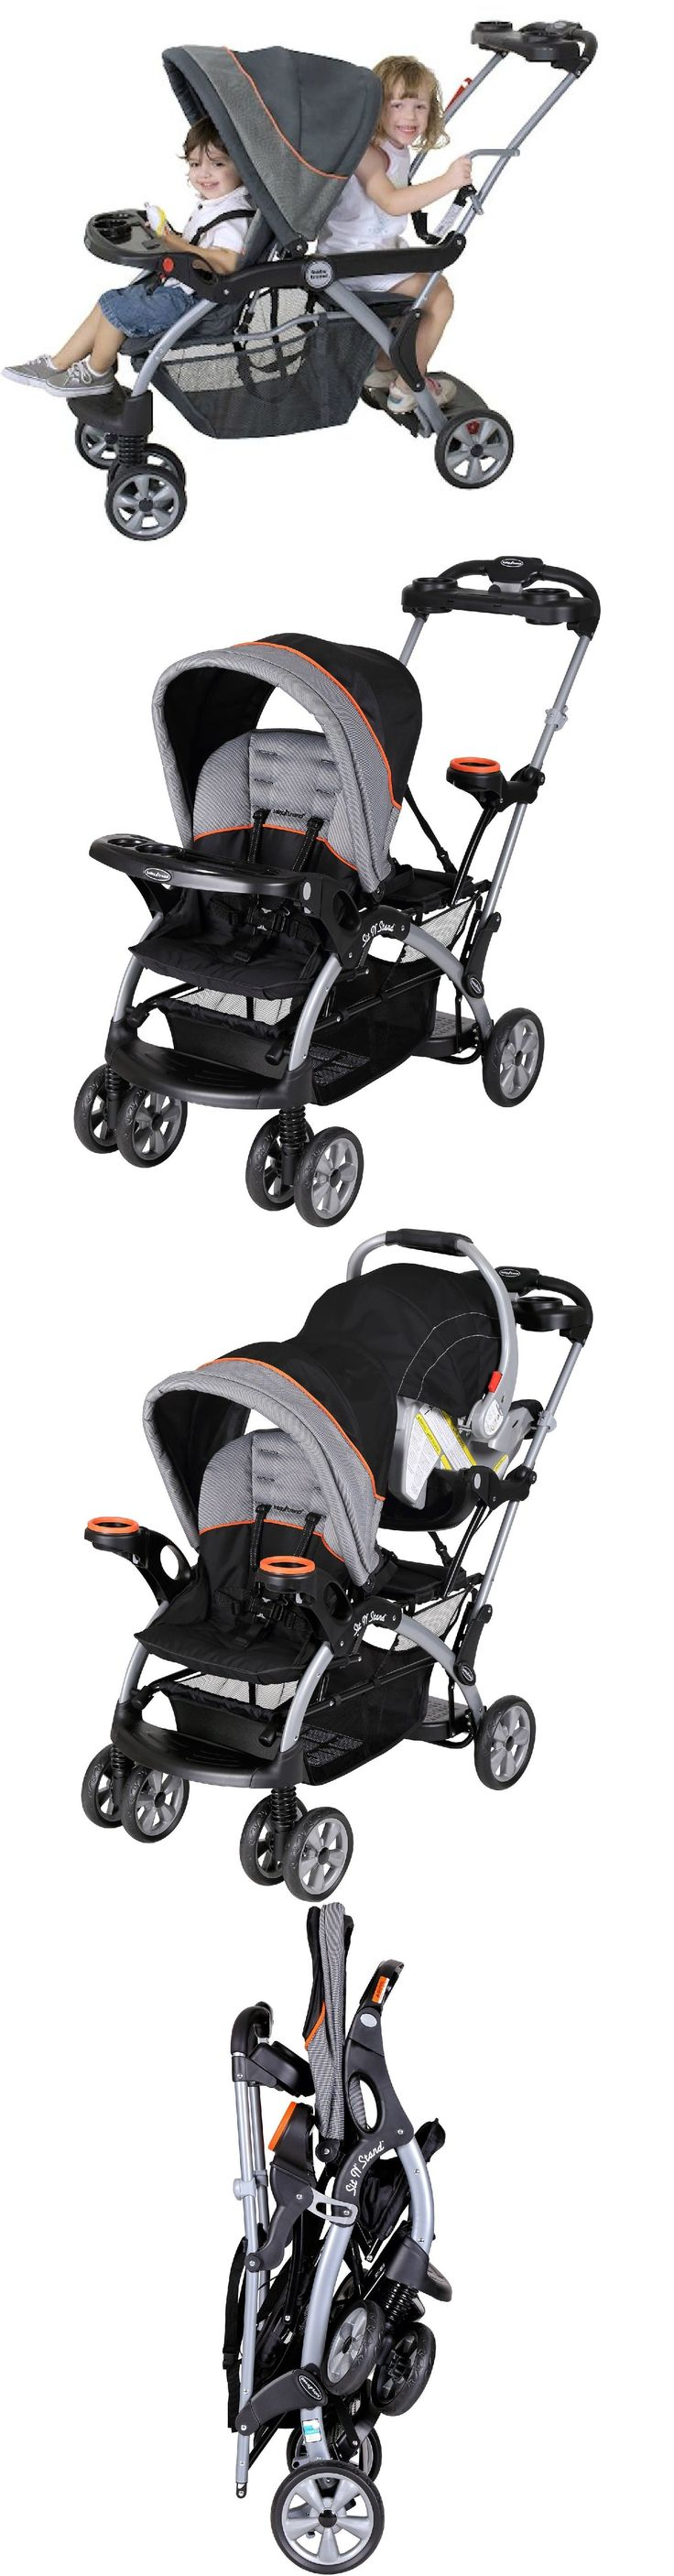 baby and kid stuff Two Kids Stroller For Baby And Toddler Two Children 2 In